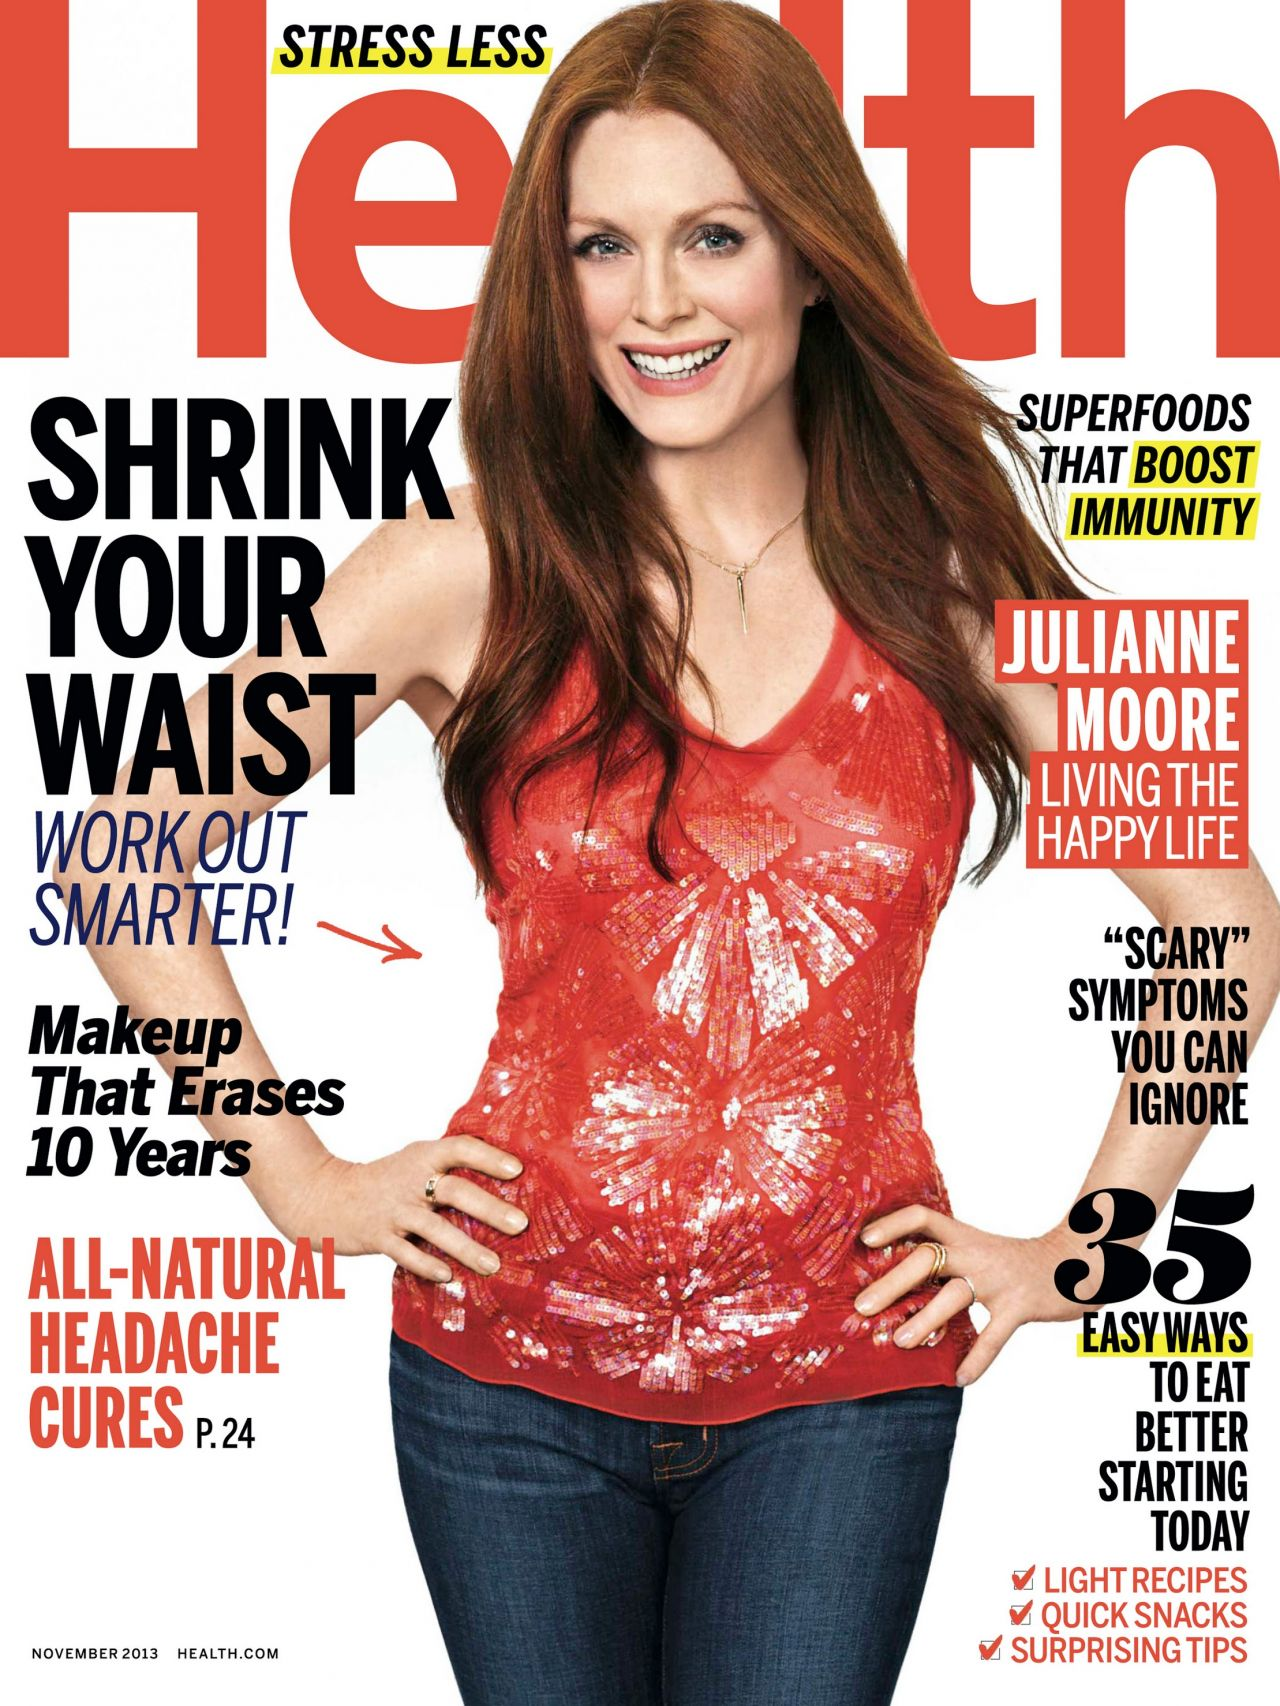 Julianne Moore - HEALTH Magazine - November 2013 Issue